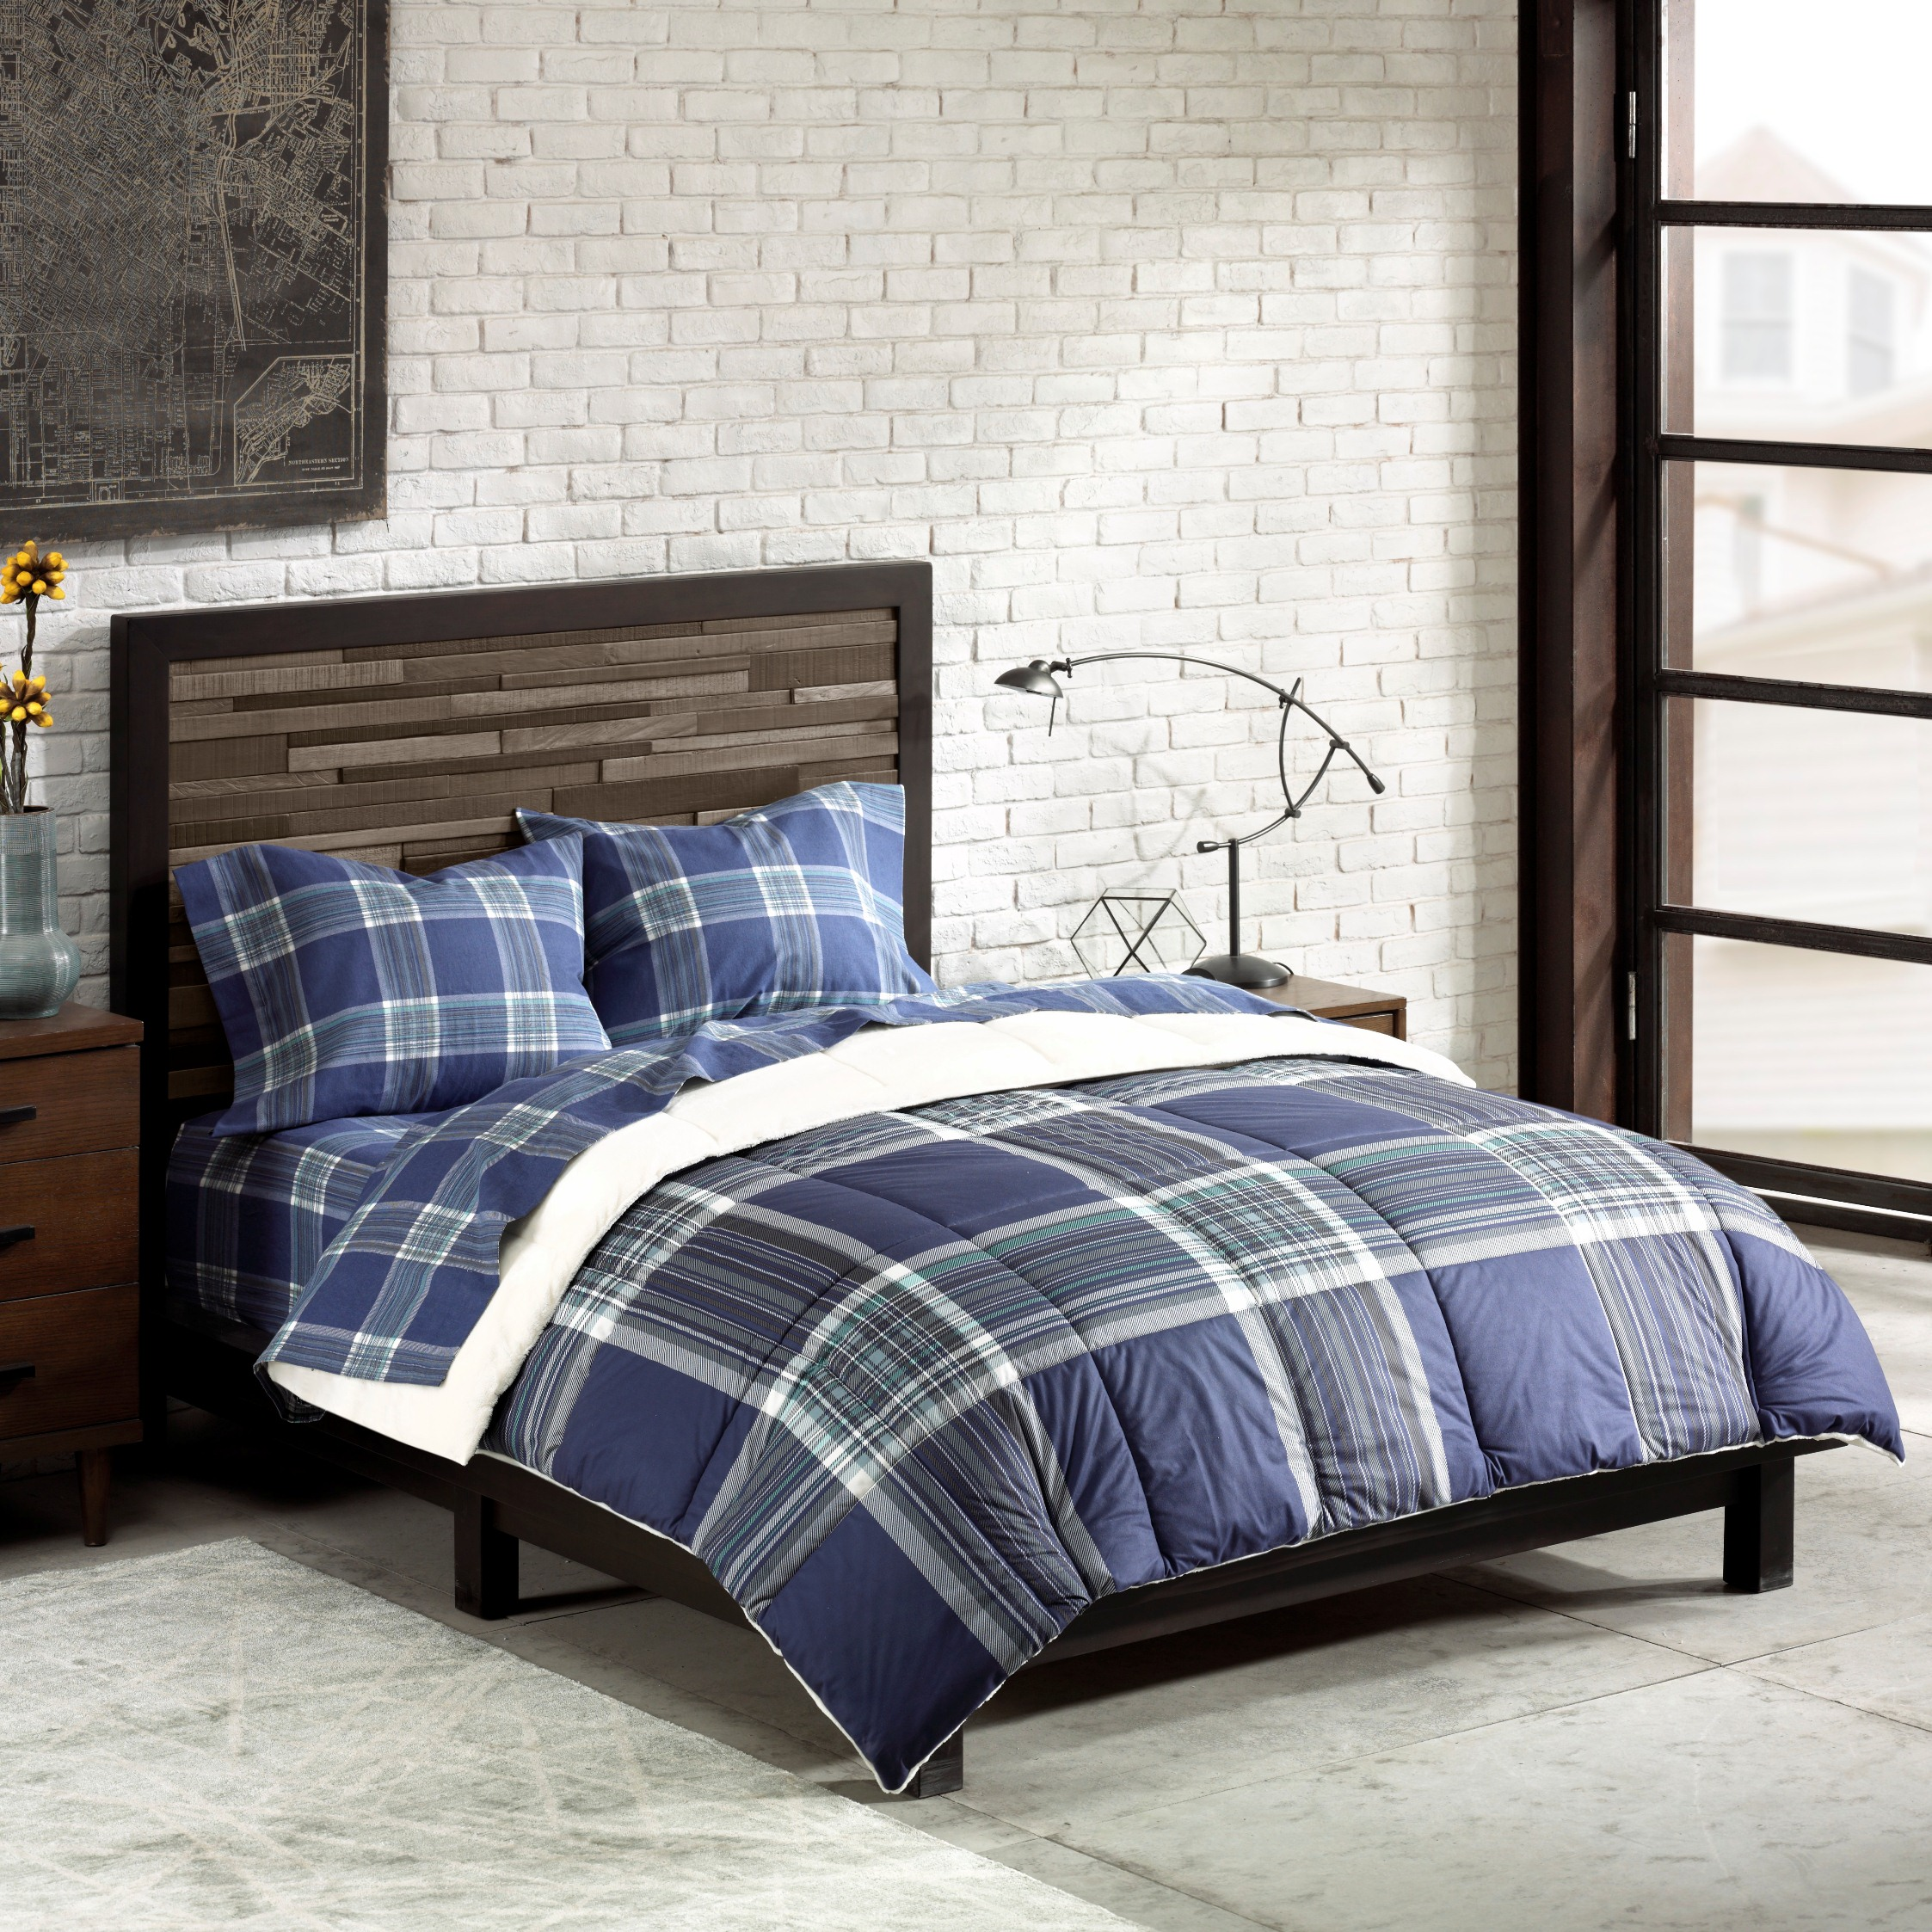 18 flannel plaid comforter quilt bedding full double size b